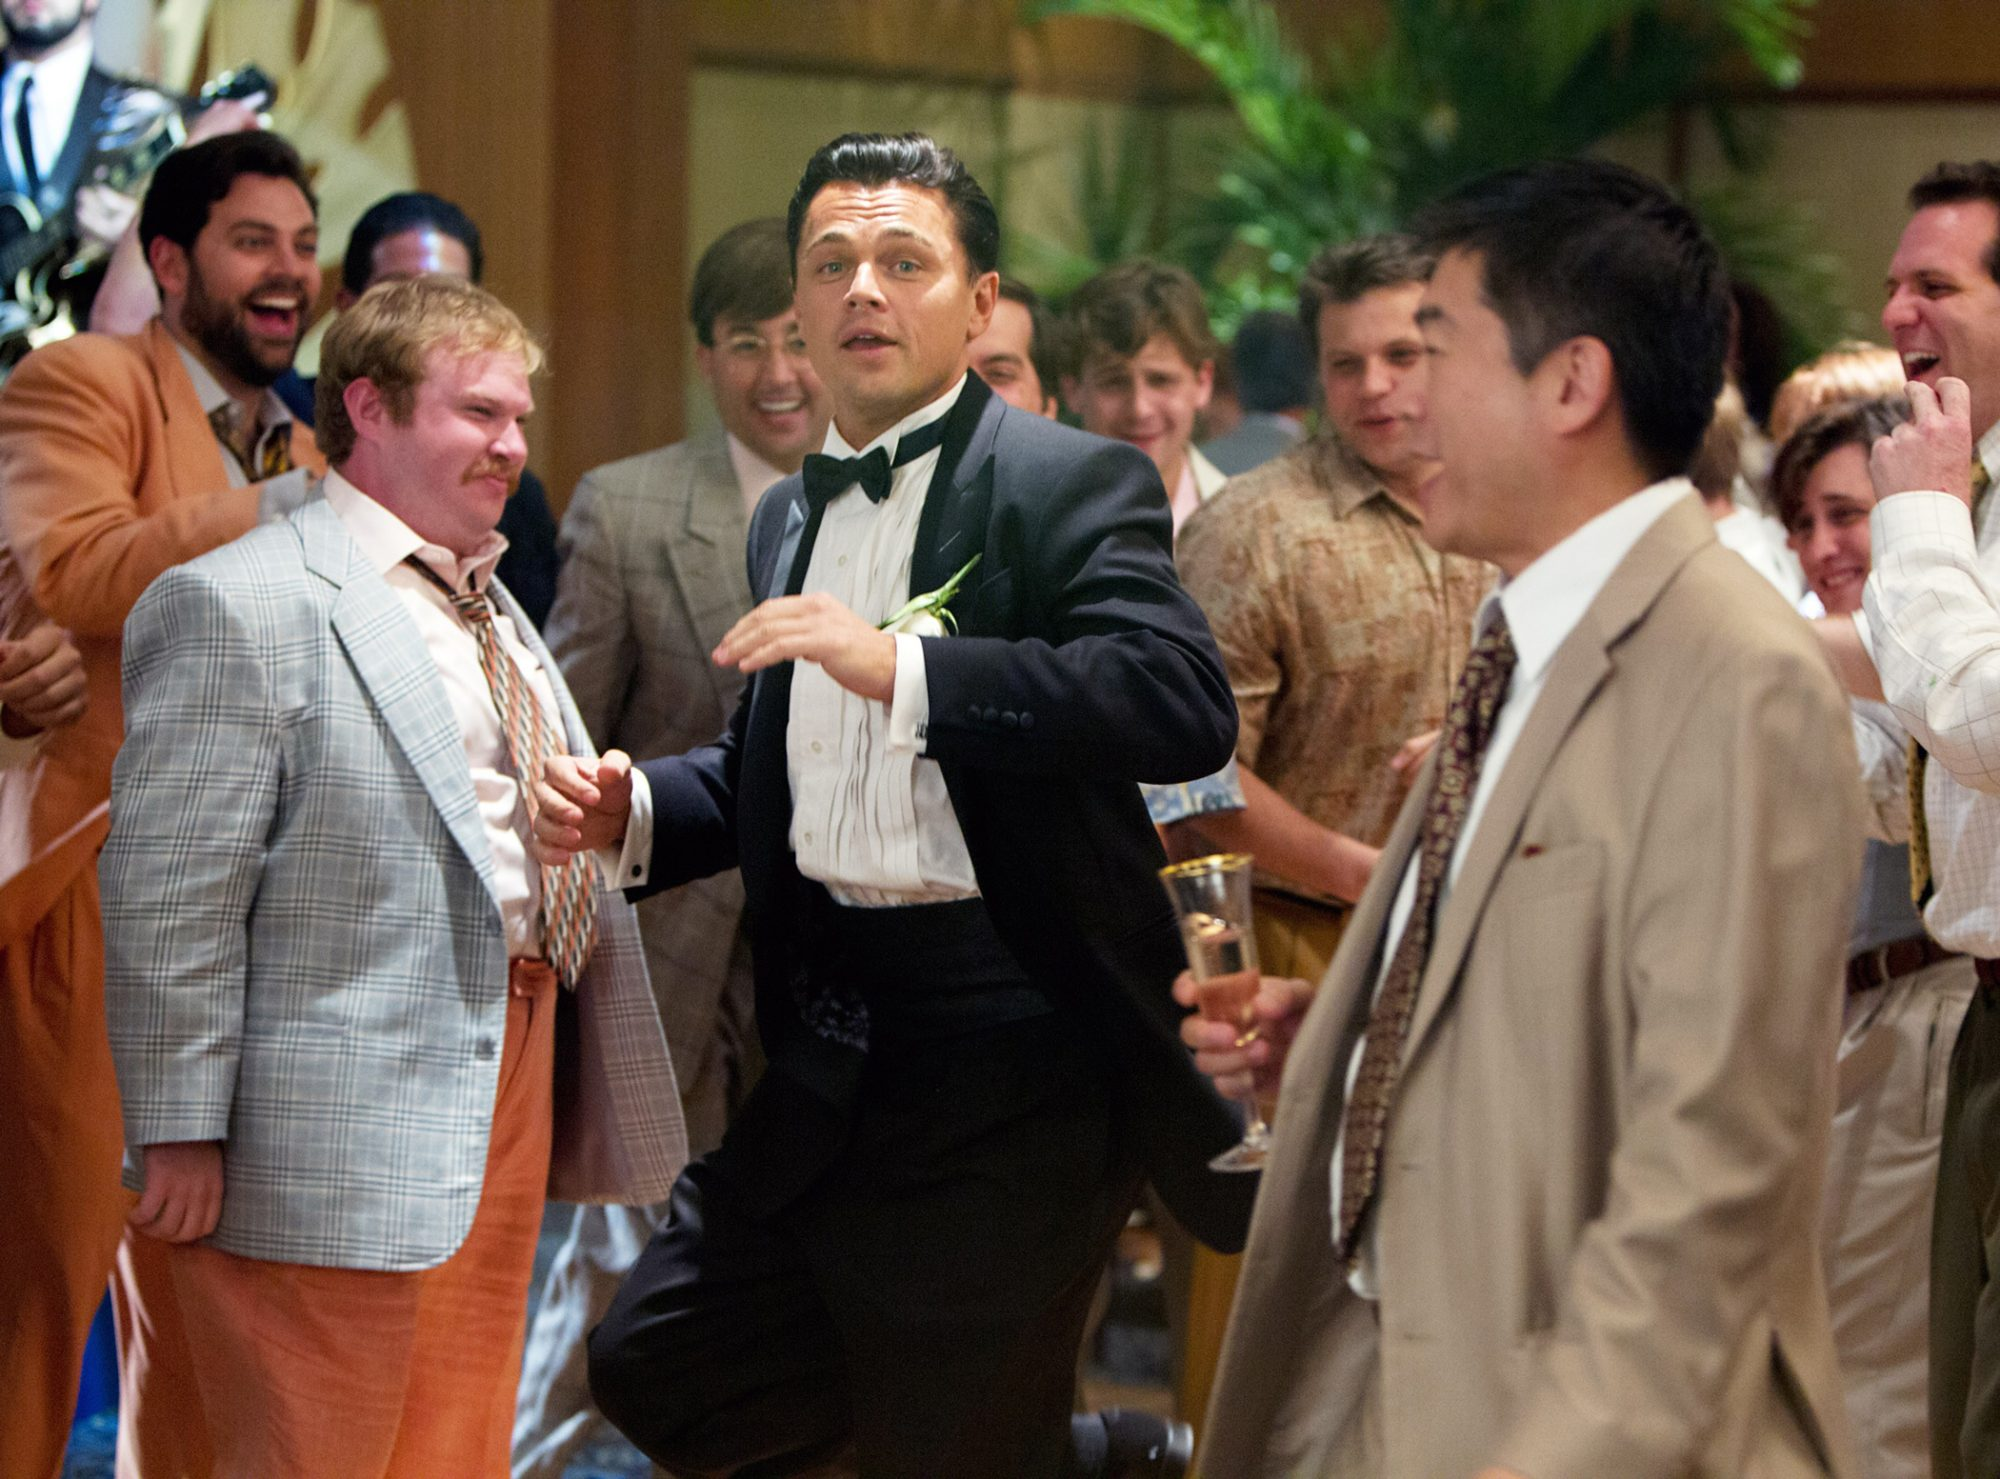 He charmed us with his moves inWolf of Wall Street.